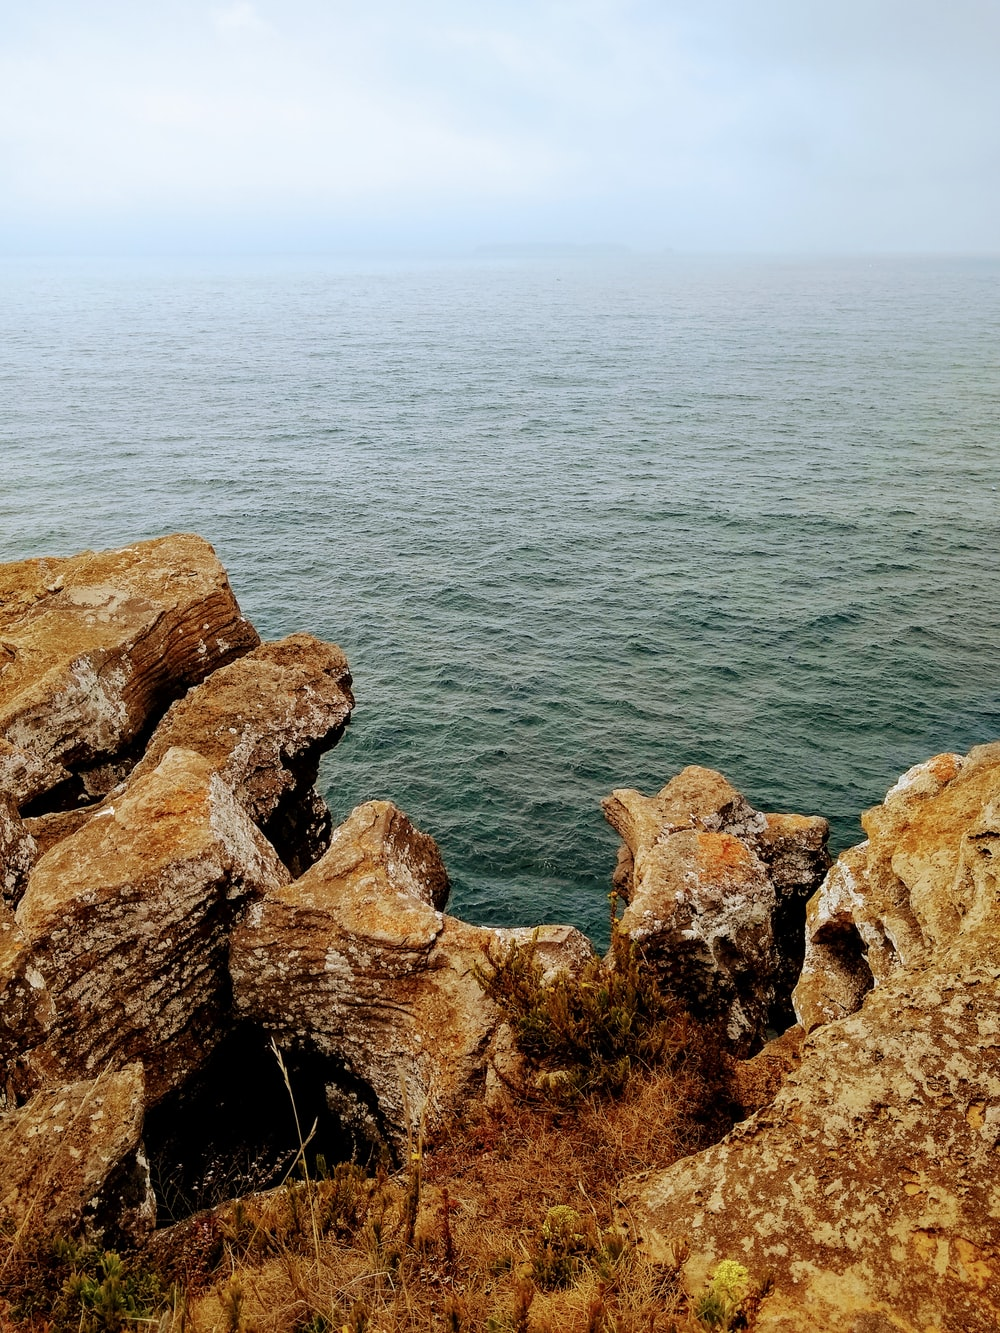 brown rock formation beside body of water during daytime